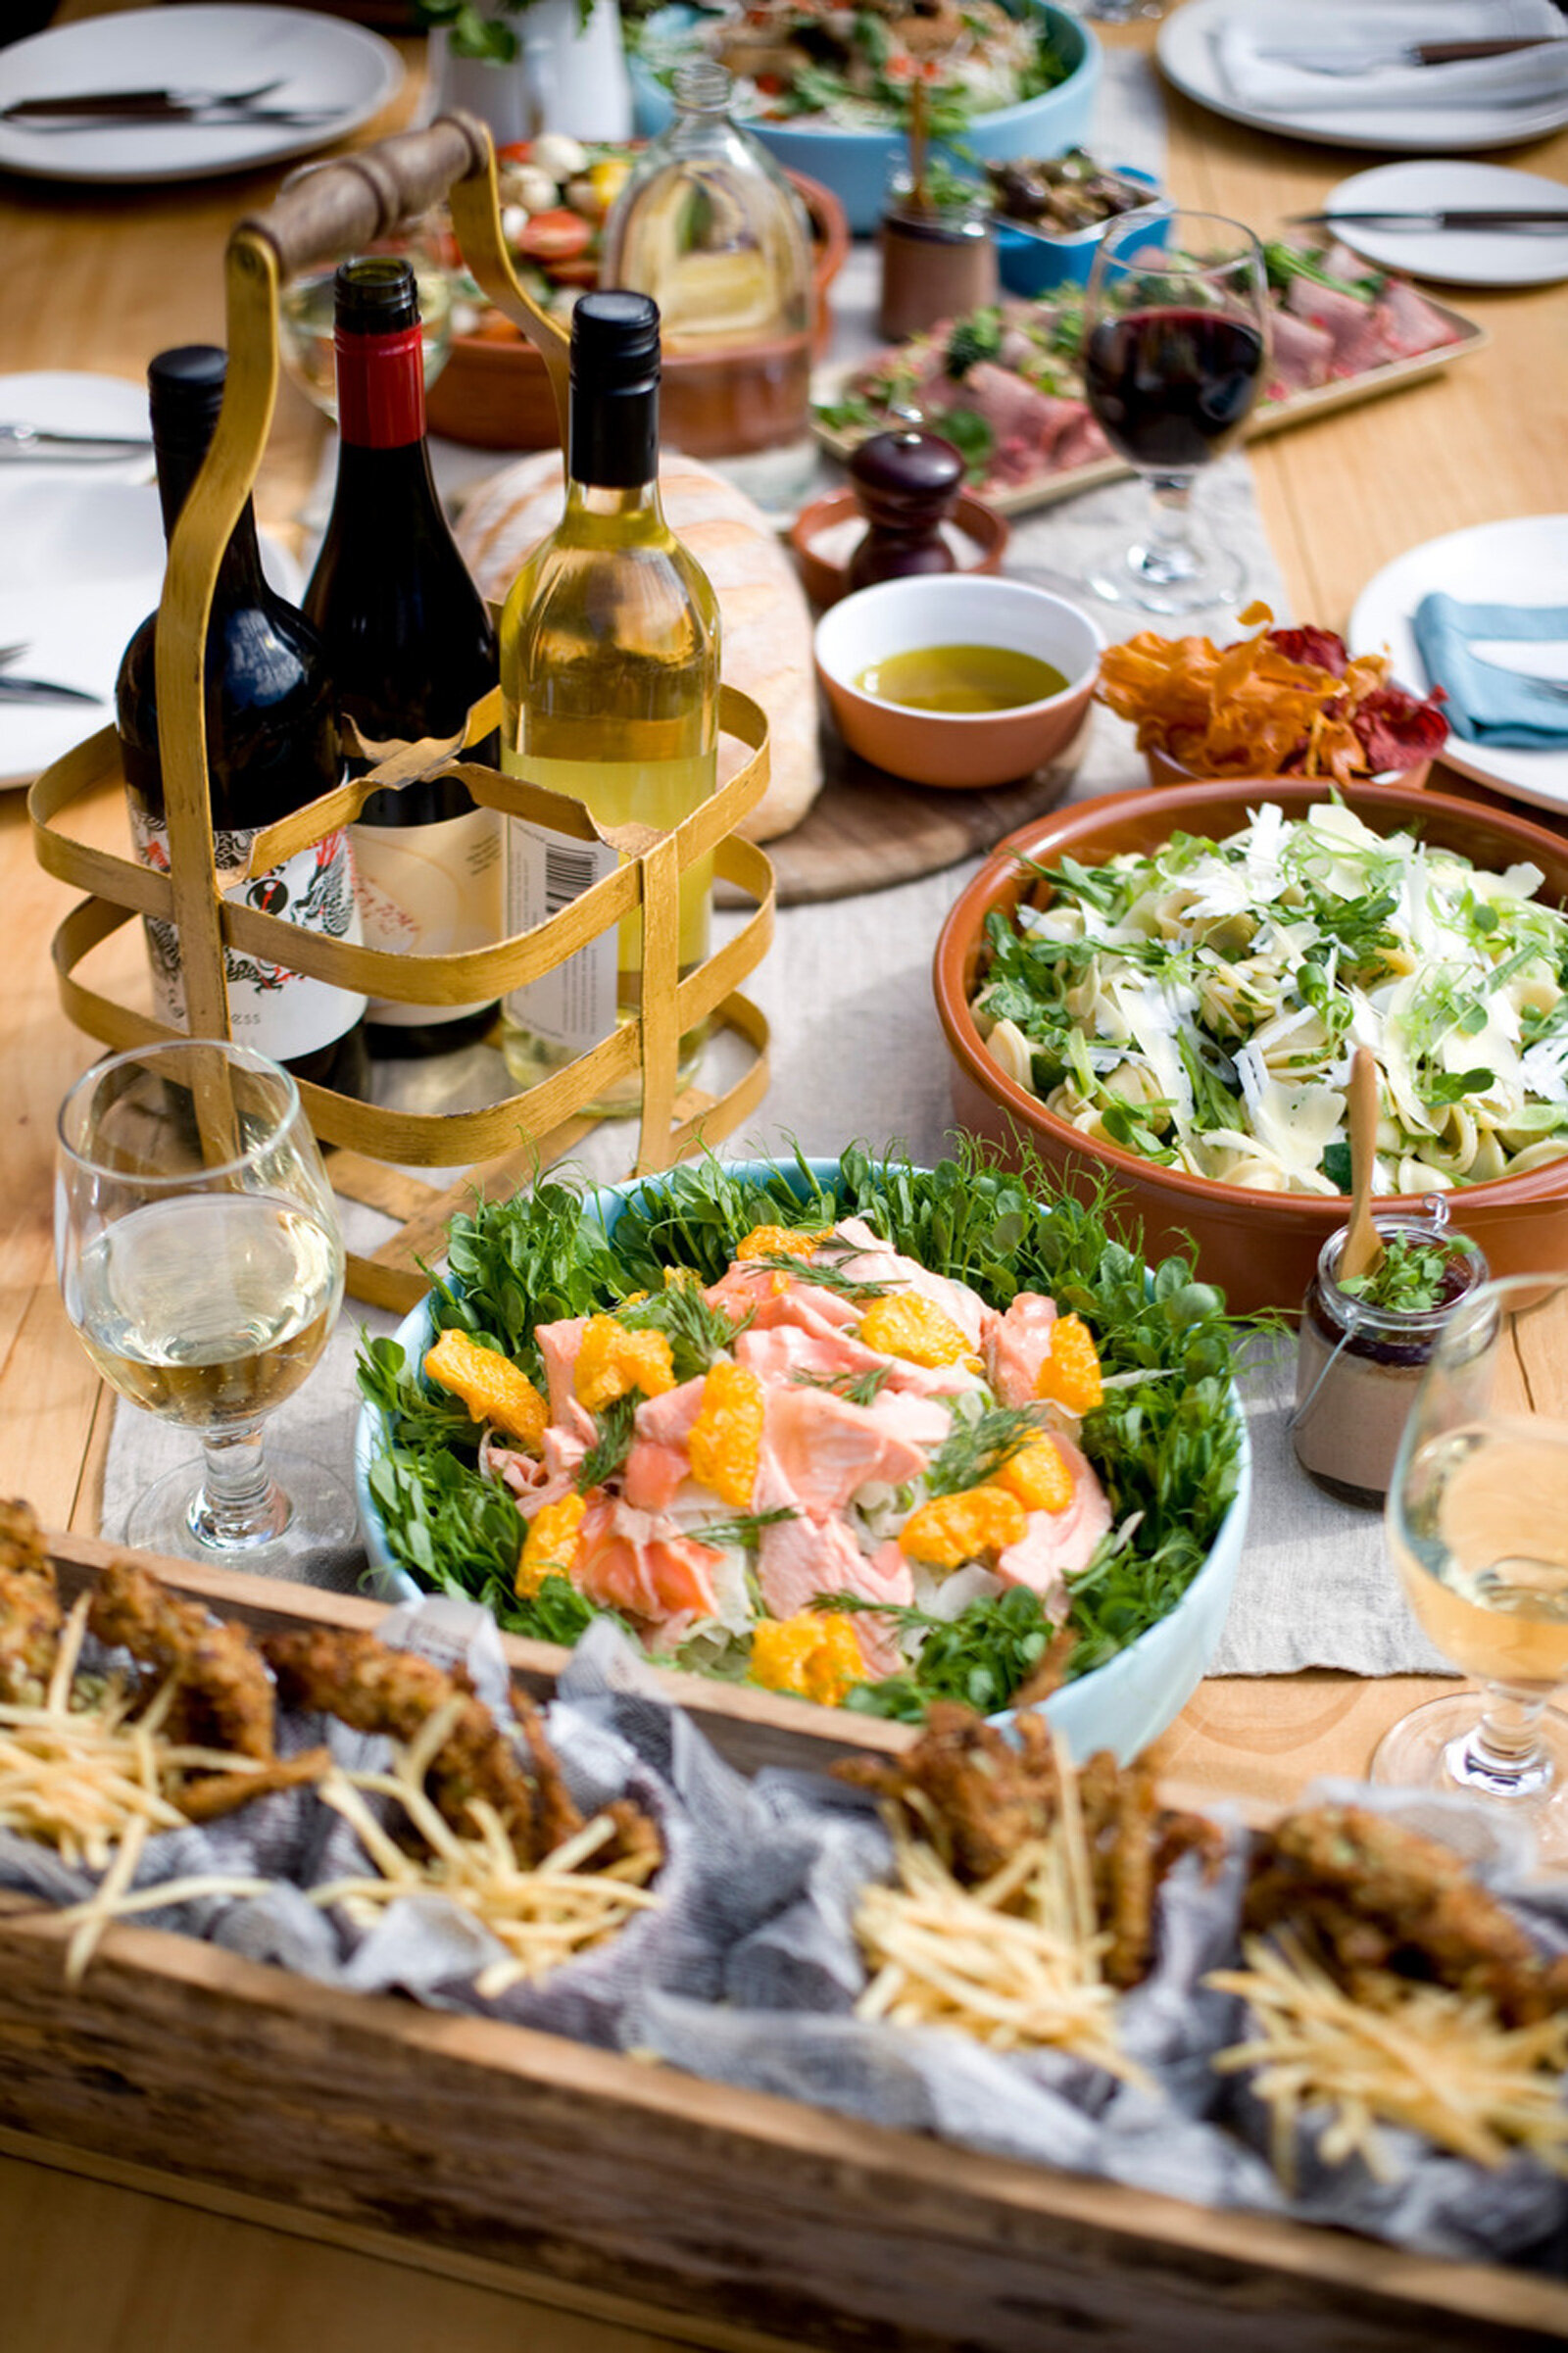 Fred-and-Ginger-Catering---Blog---August-2019-3.jpg